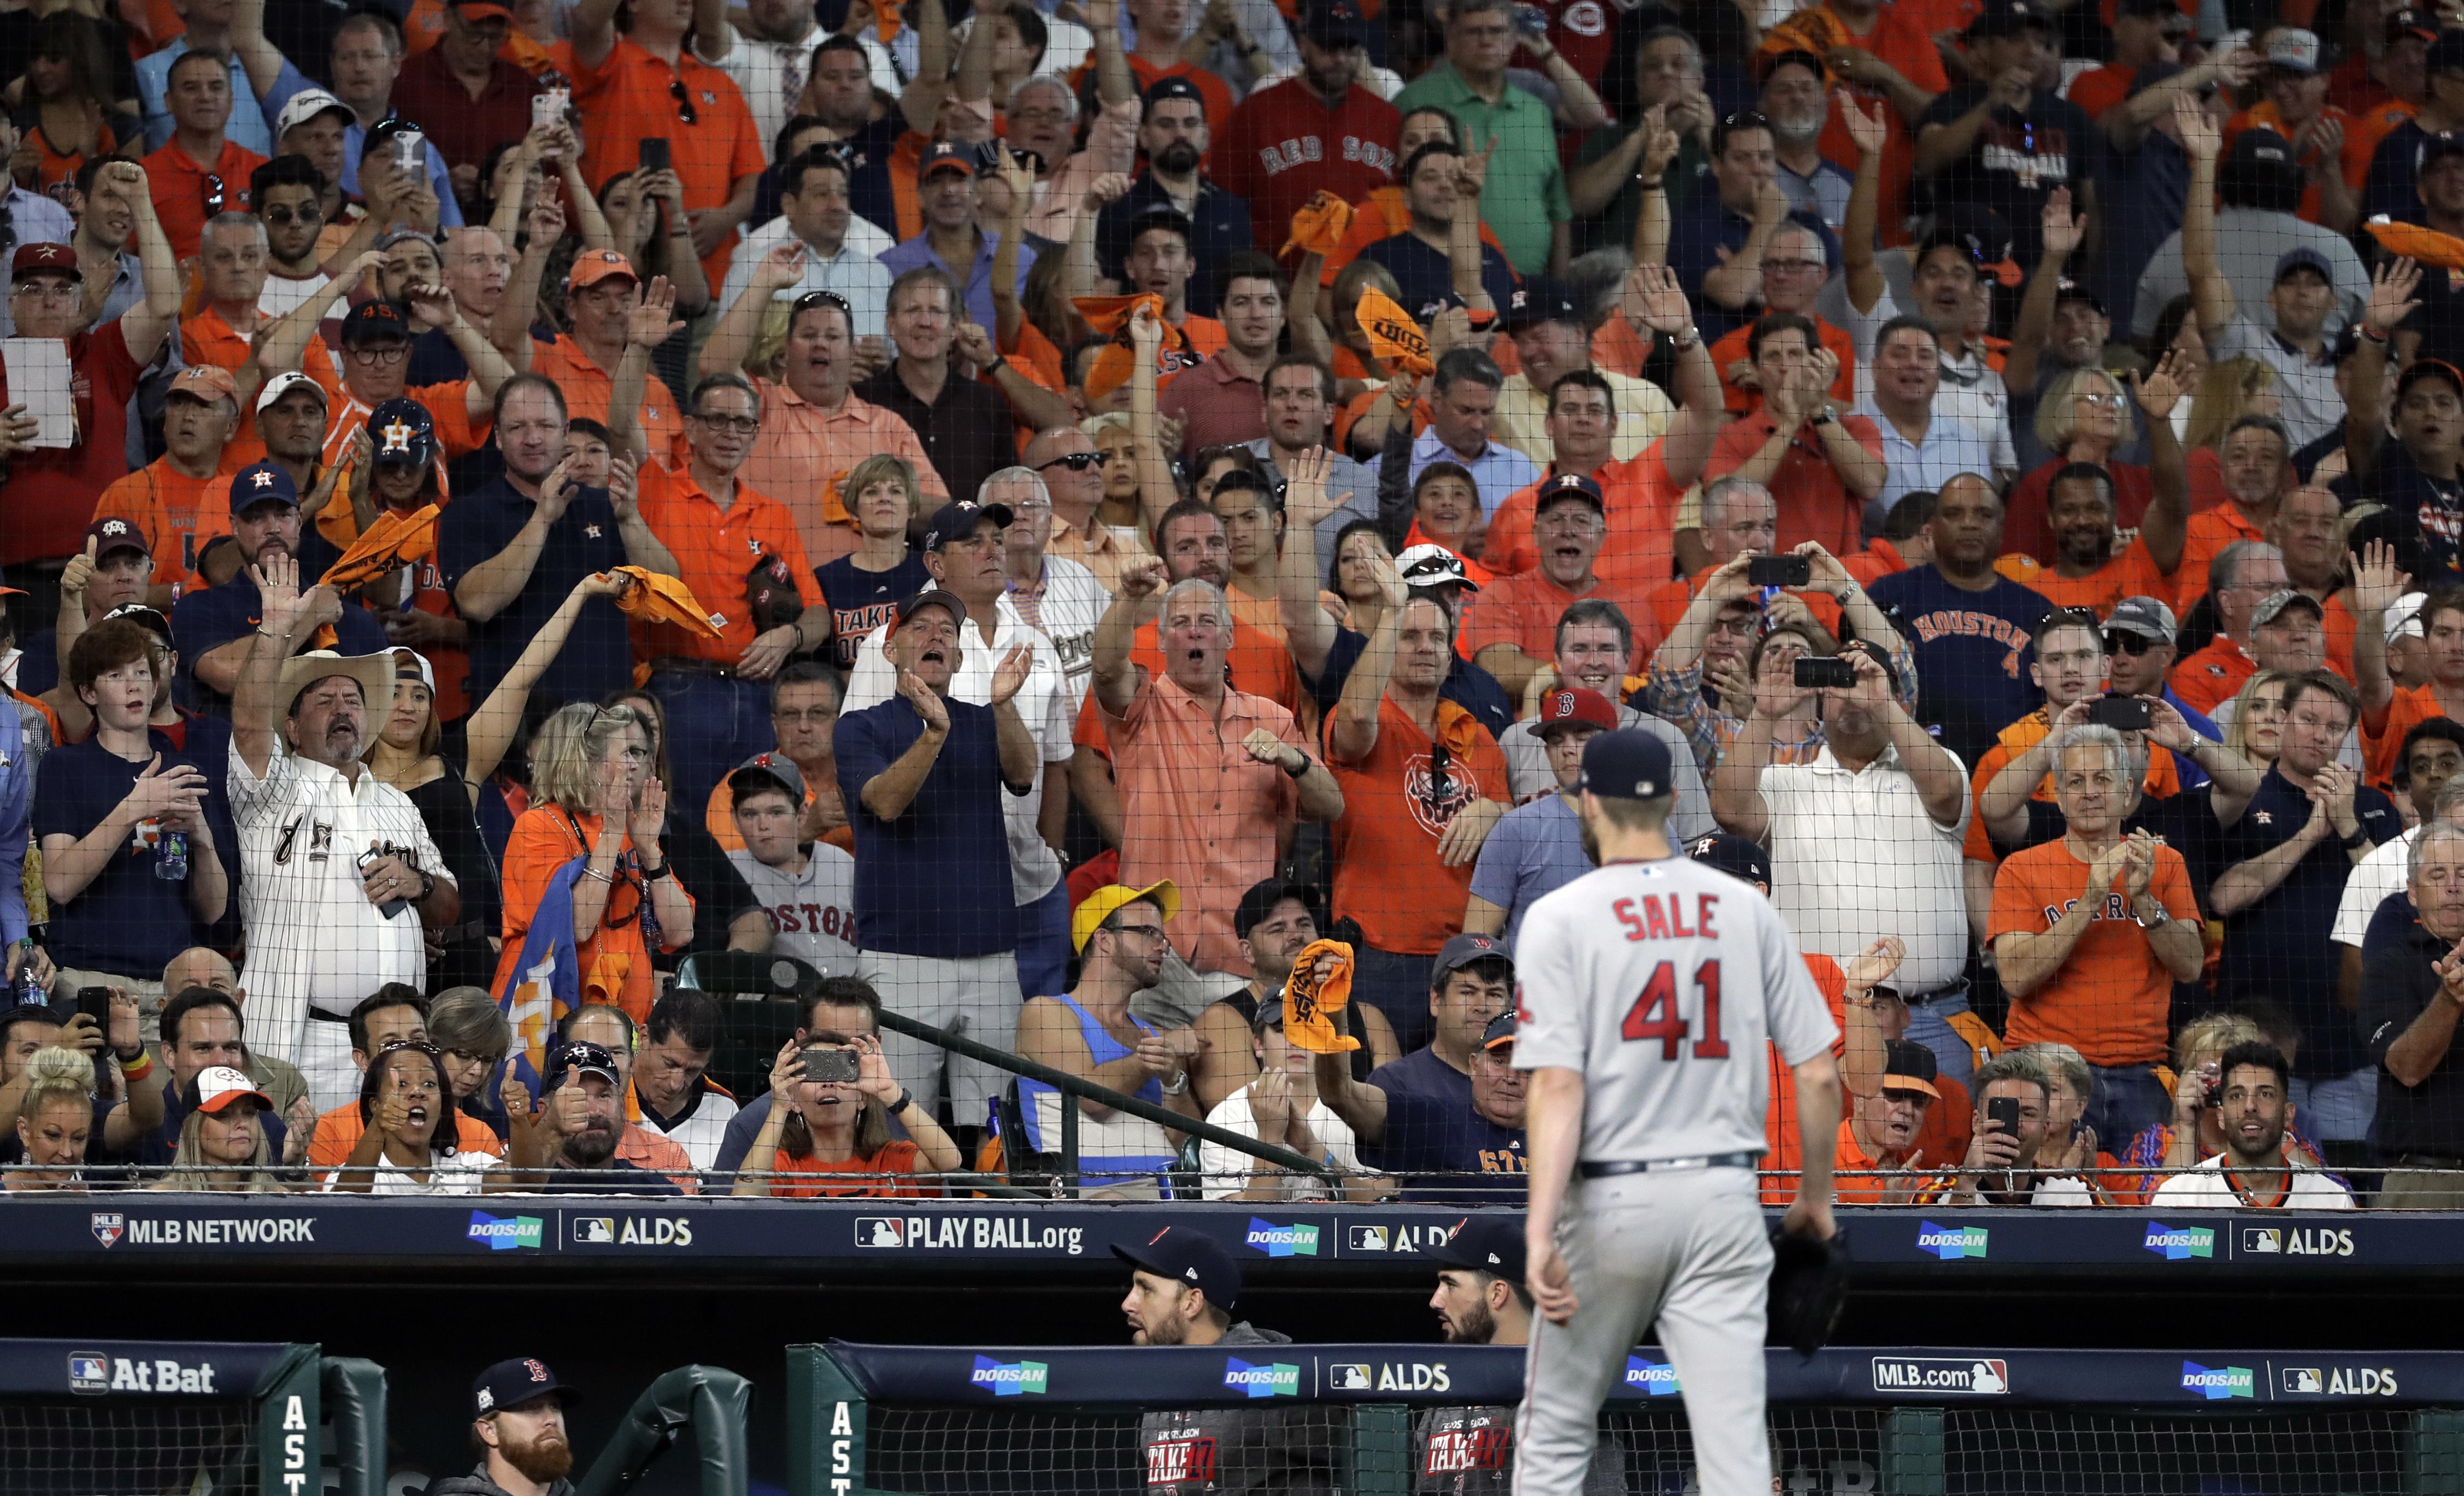 Alds_red_sox_astros_baseball_88811